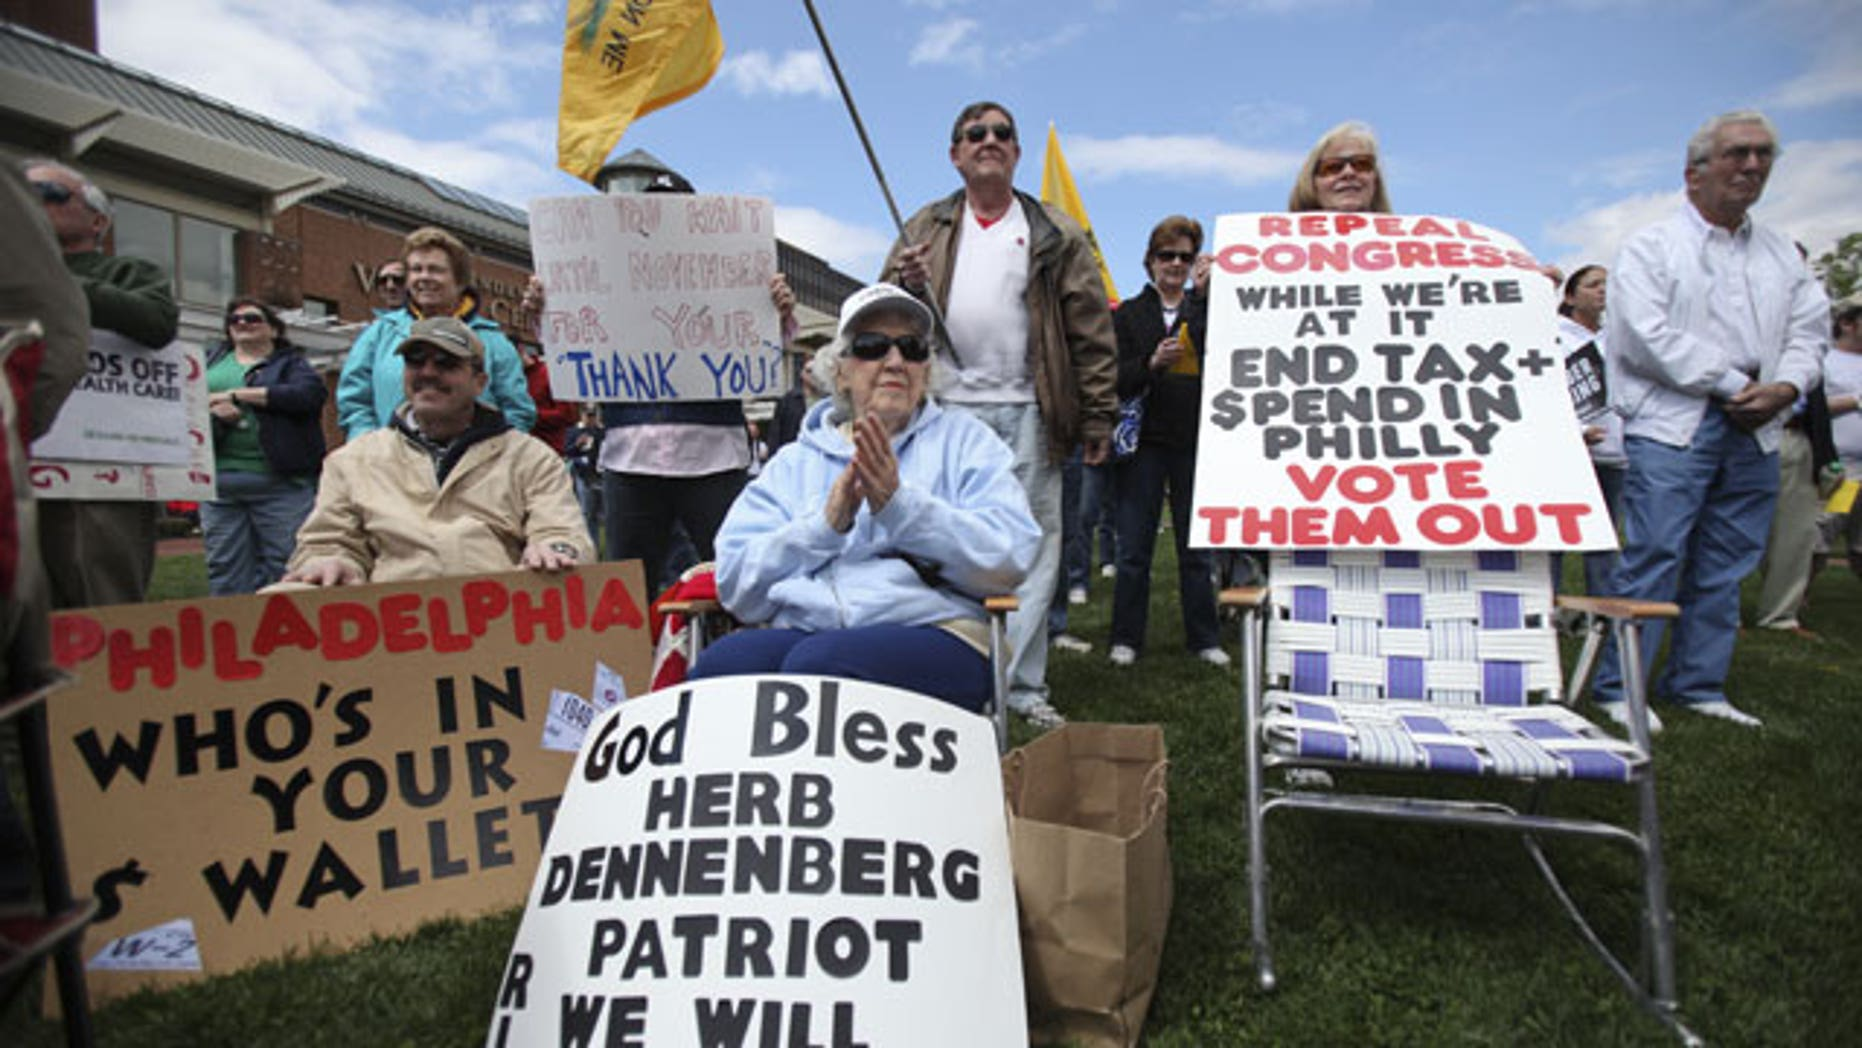 Fox News poll finds nearly one voter in six considers themselves part of the Tea Party movement